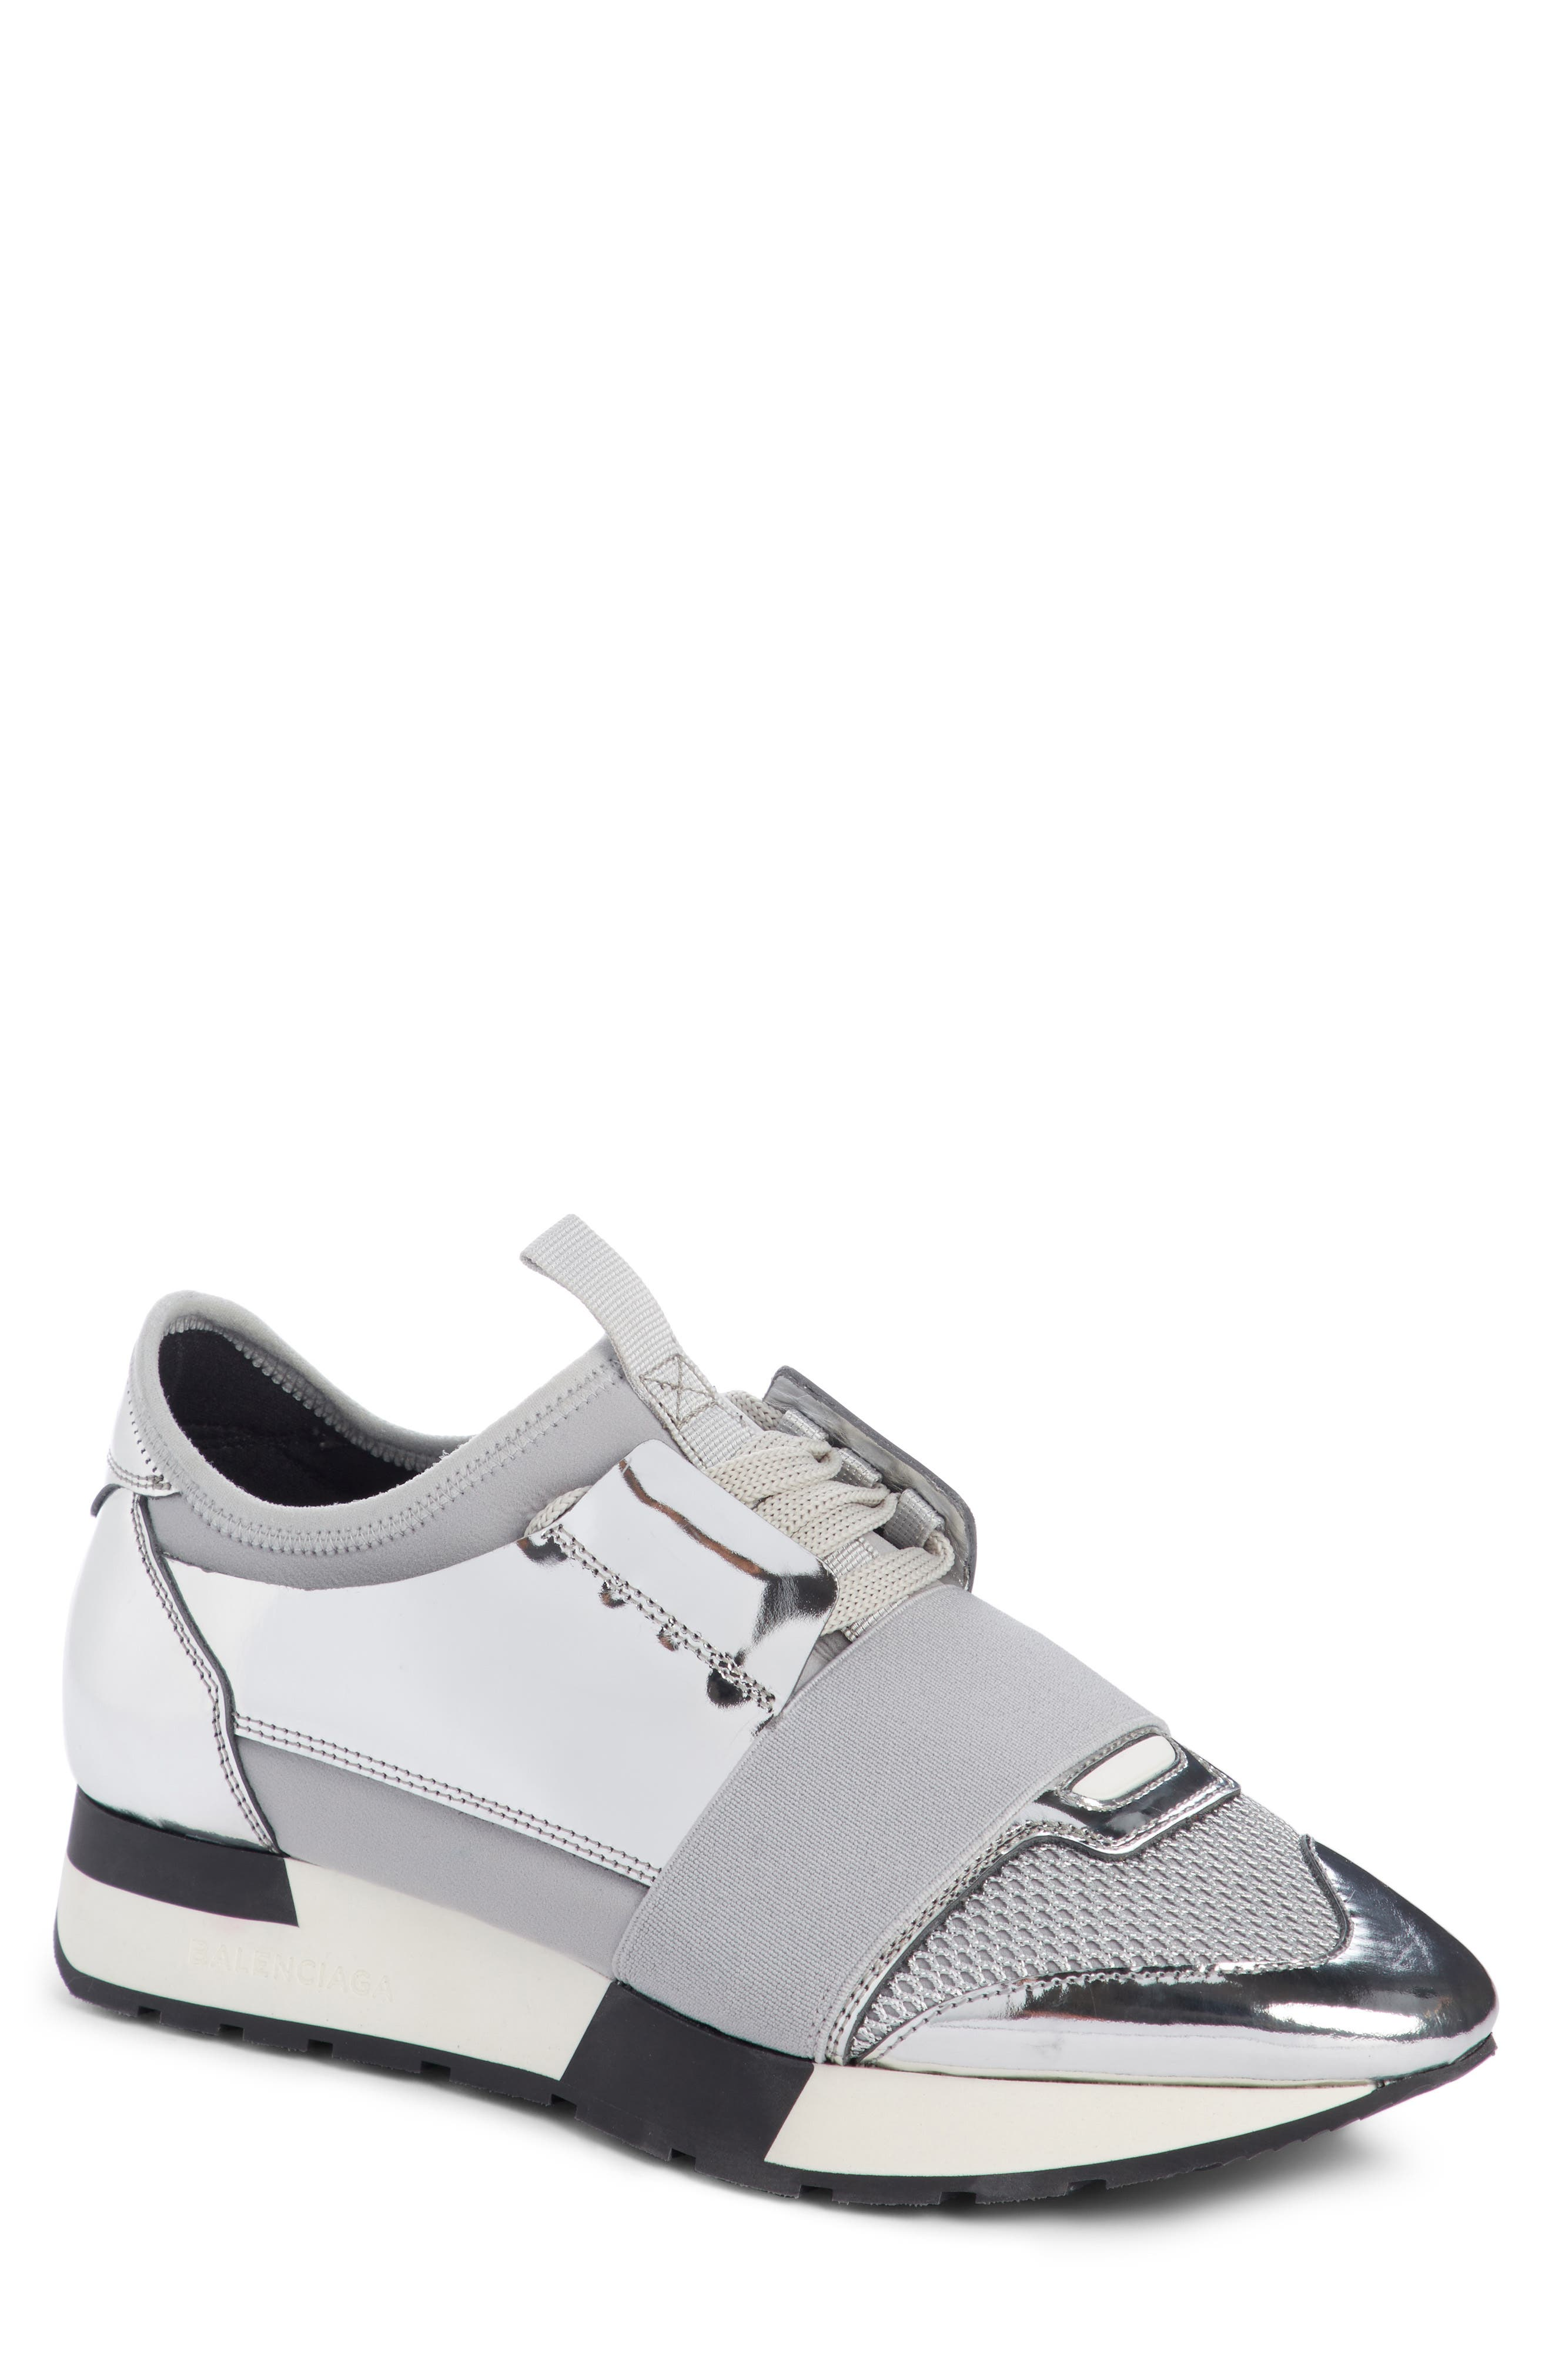 Balenciaga Lace-Up Sneaker (Women)